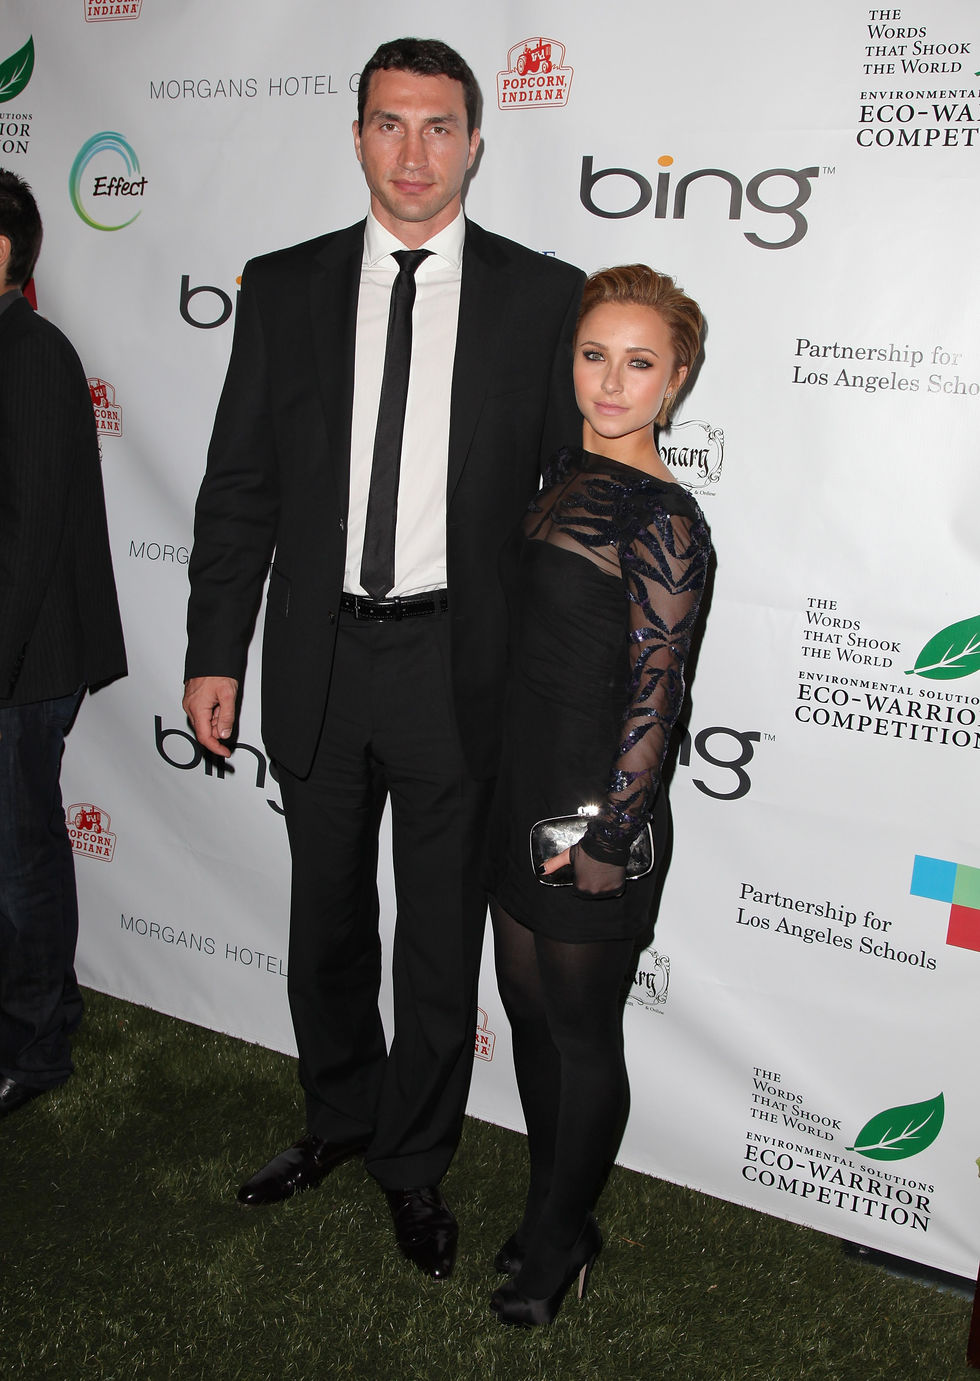 Hayden Panettiere 2010 : hayden-panettiere-at-the-green-carpet-home-tree-earth-day-celebration-april-2010-10